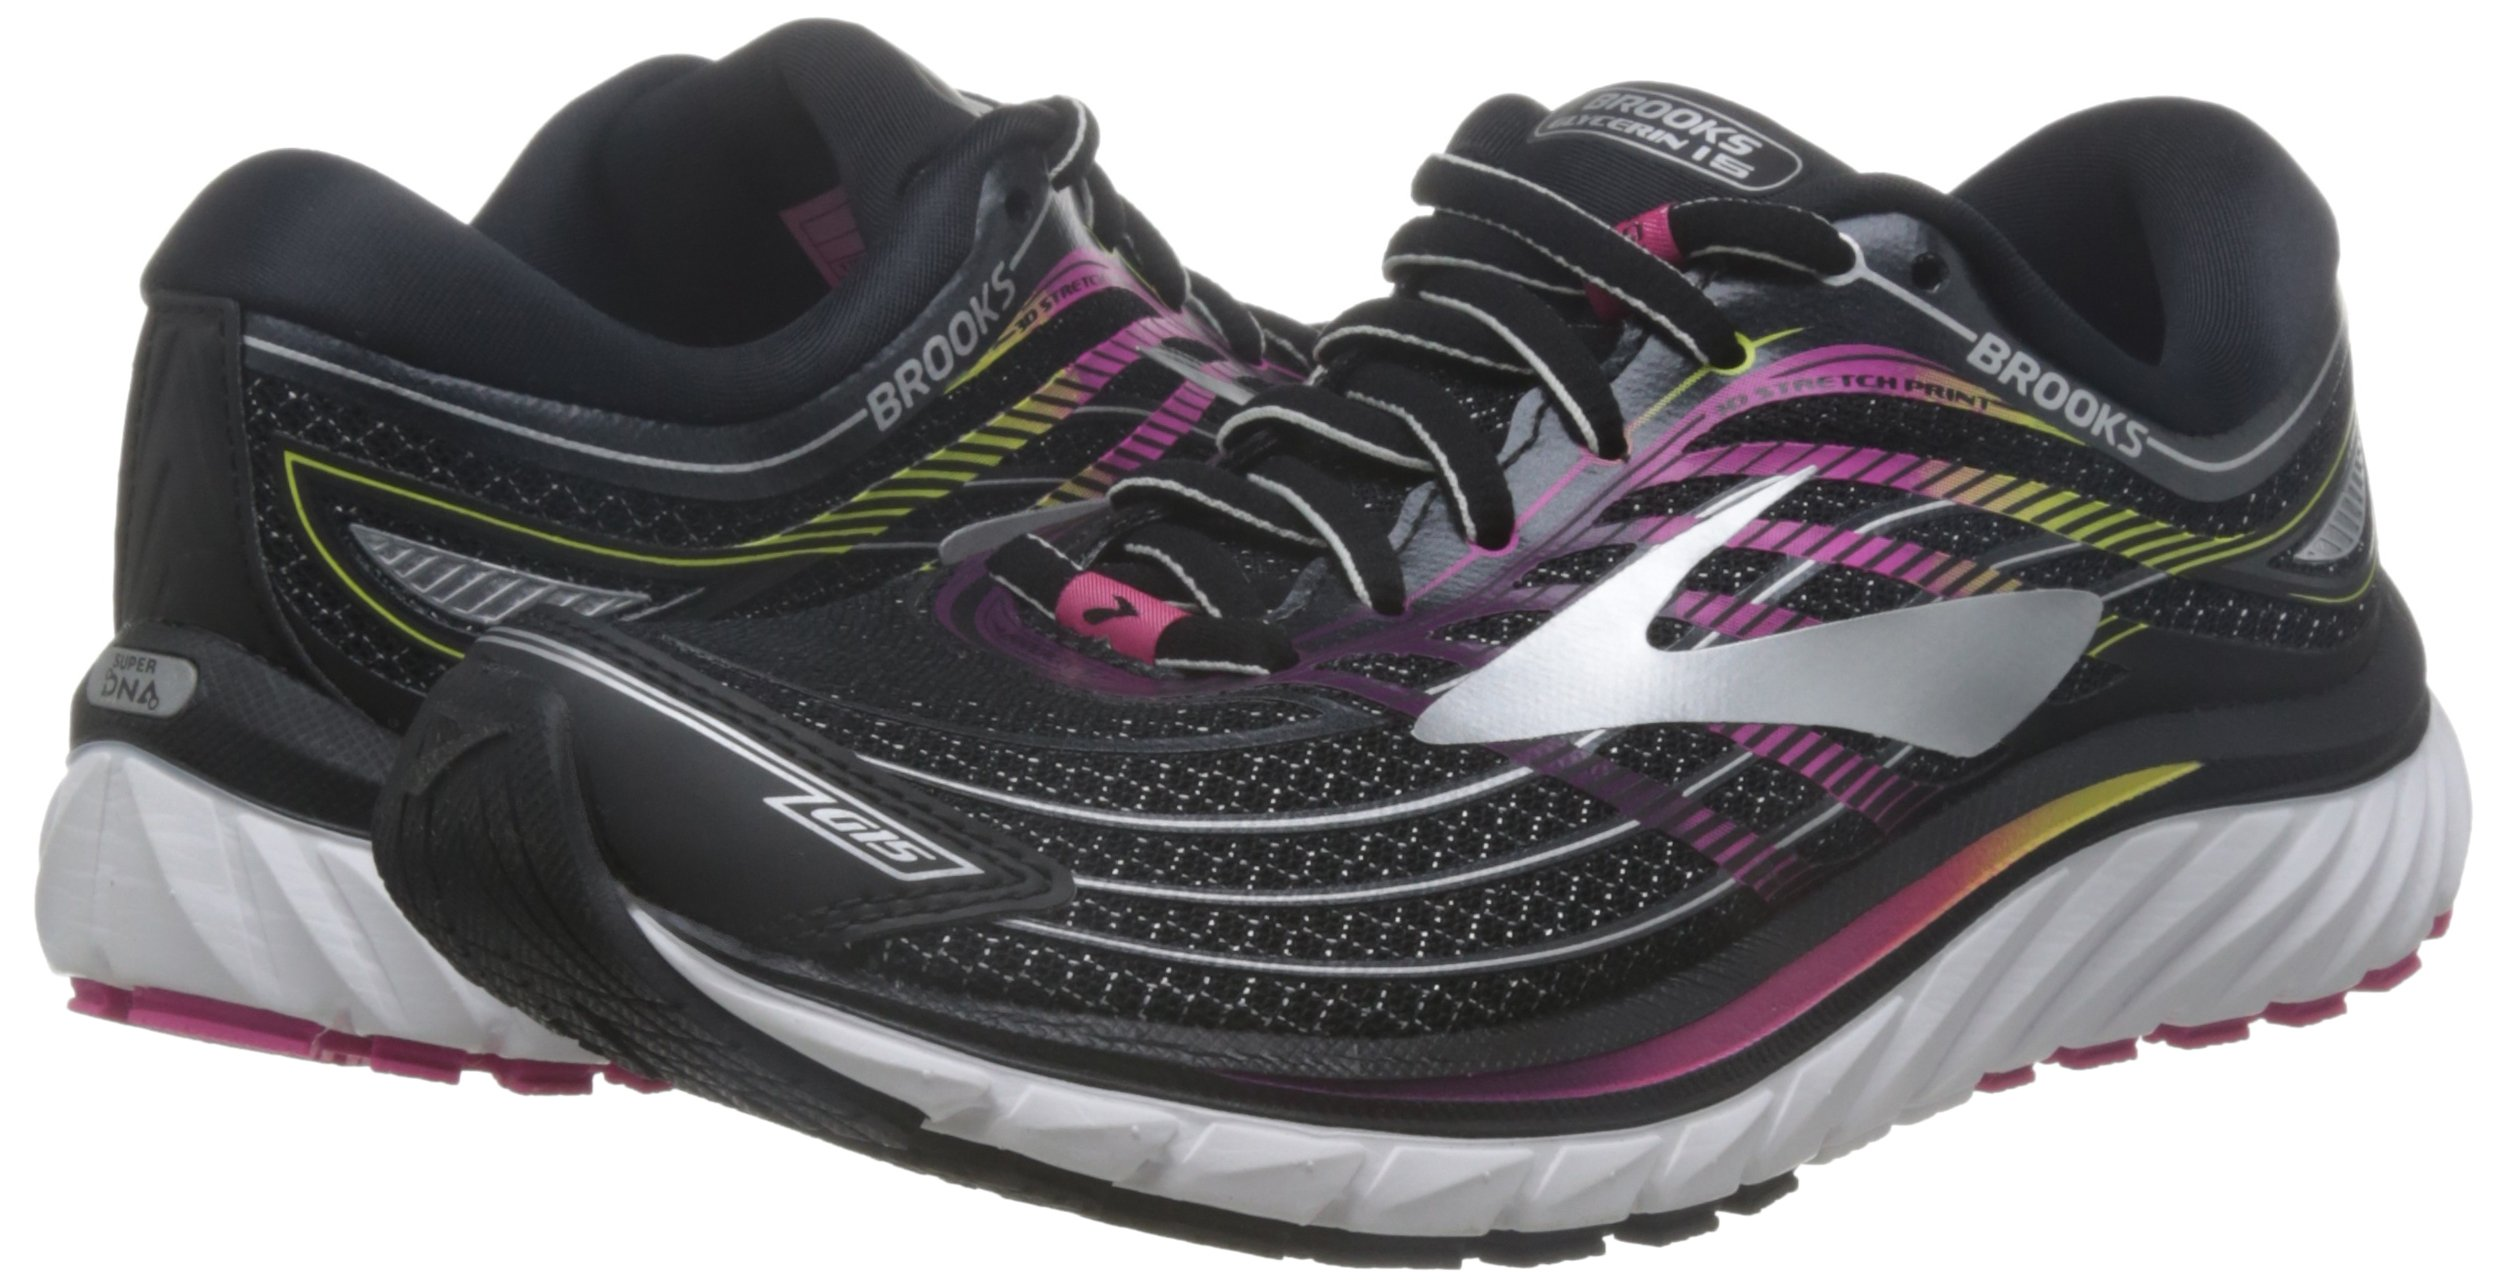 Brooks 15 Women's Glycerin 15 Brooks Running Shoes (Black/Pink, 6.0) 7a630c